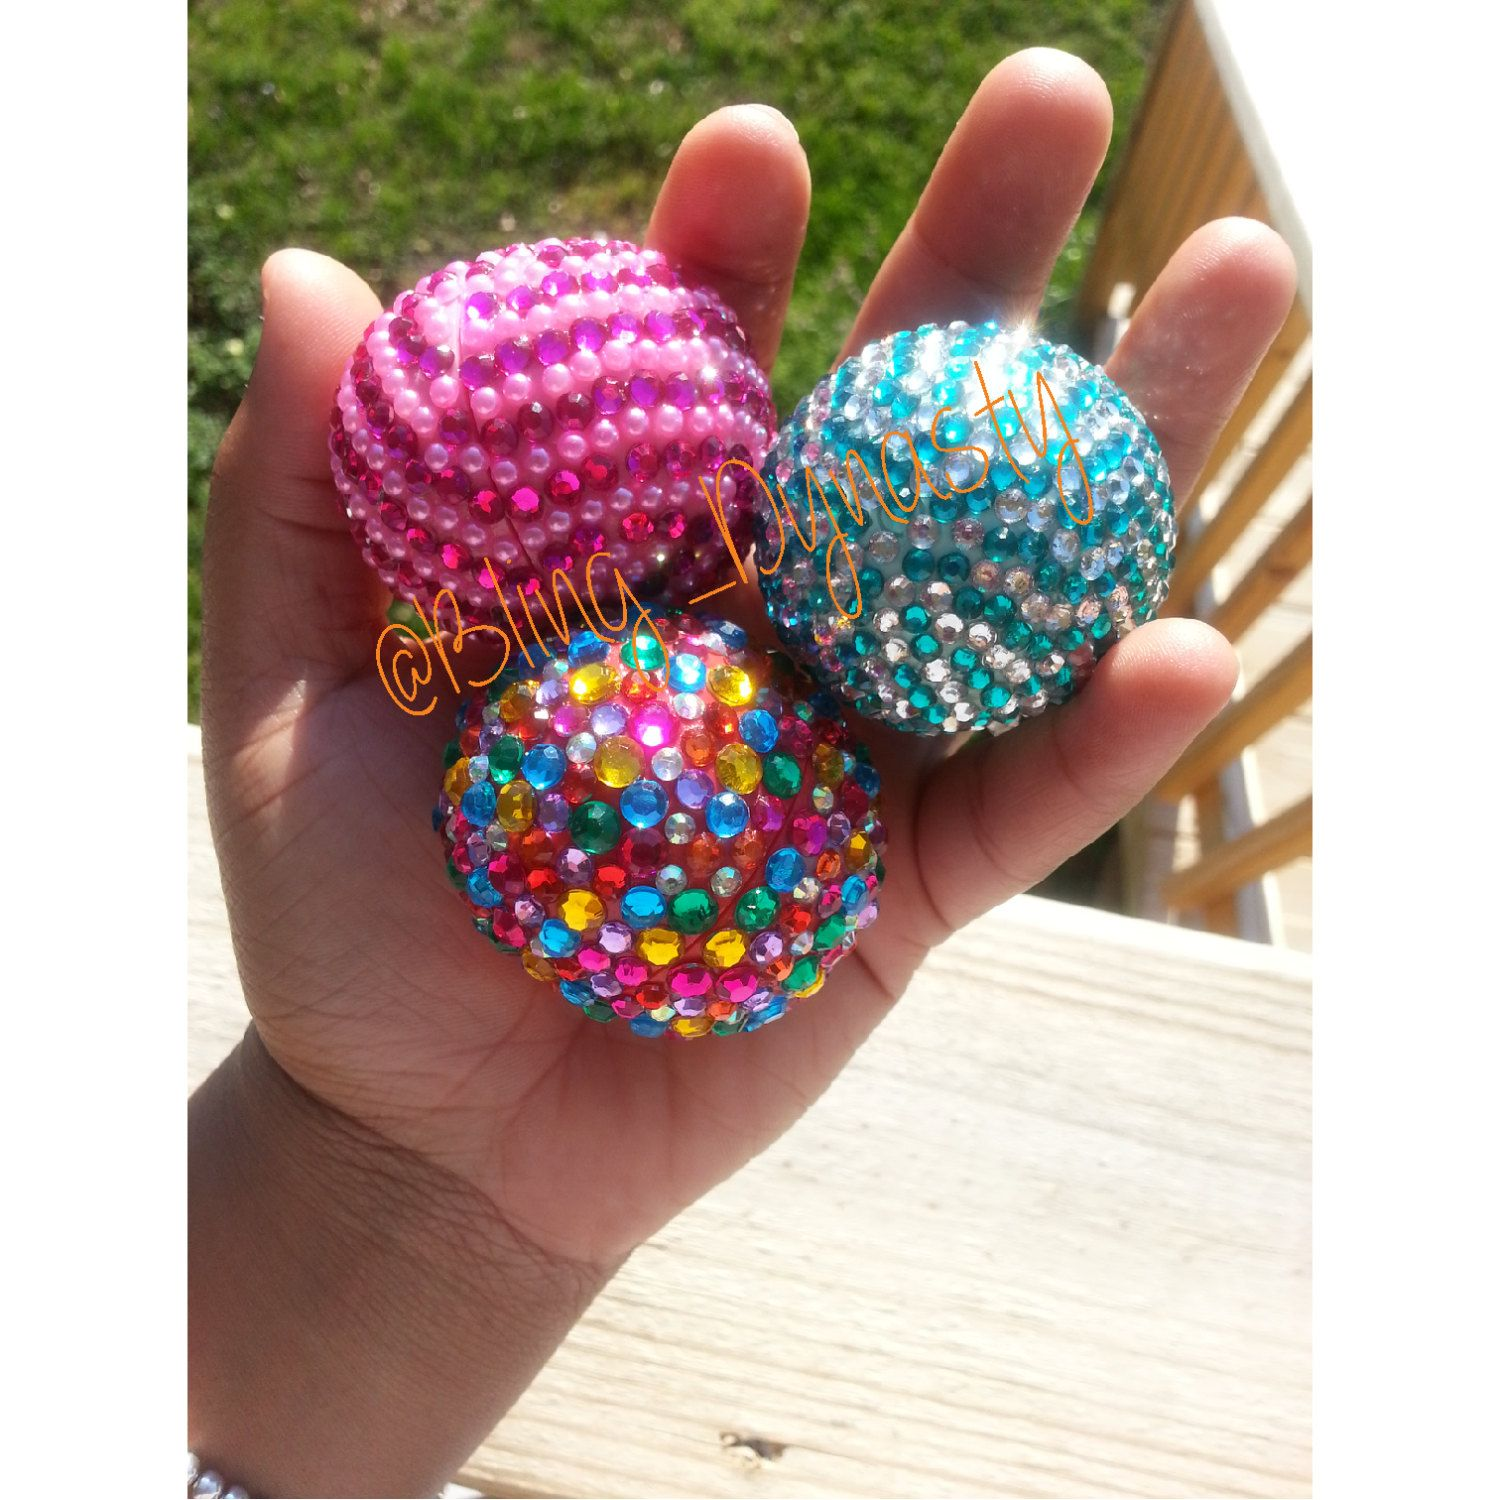 Bling Eos Lip Balm | Eos, America and Make your